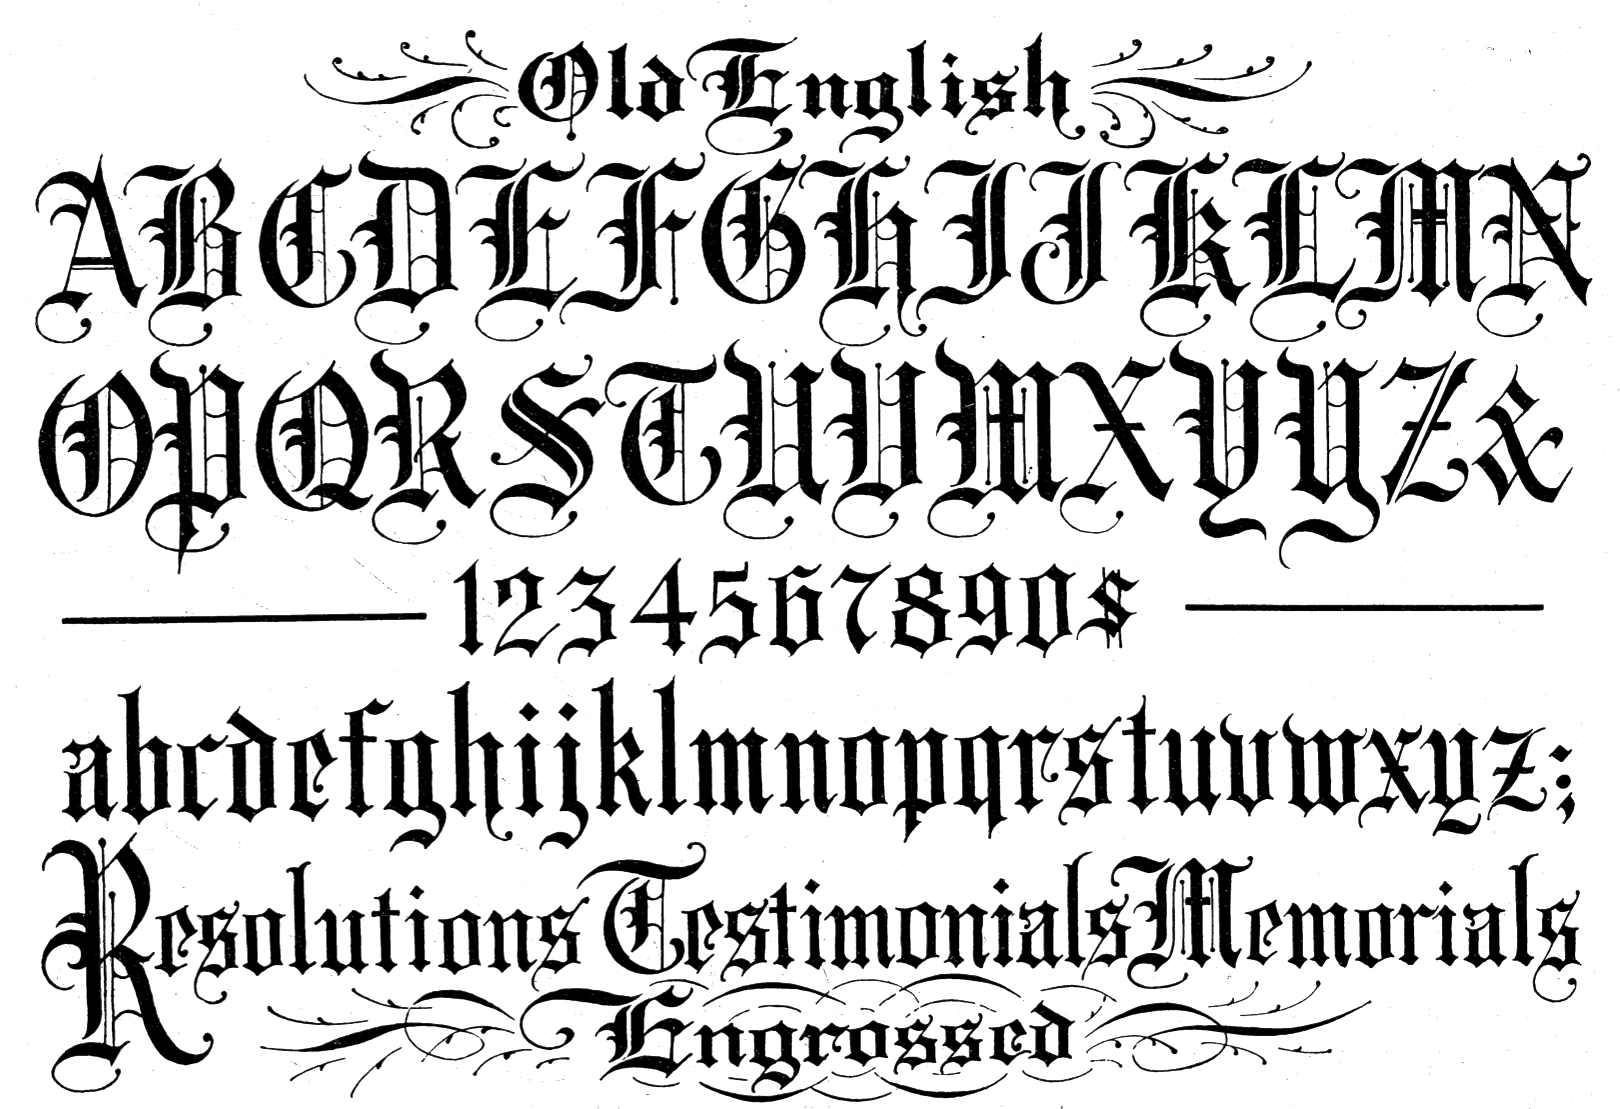 old english lettering ross f george speedball 10 1927 tattoos amp piercings 13941 | 6a092239f2b48488b03a908b5bf9c430